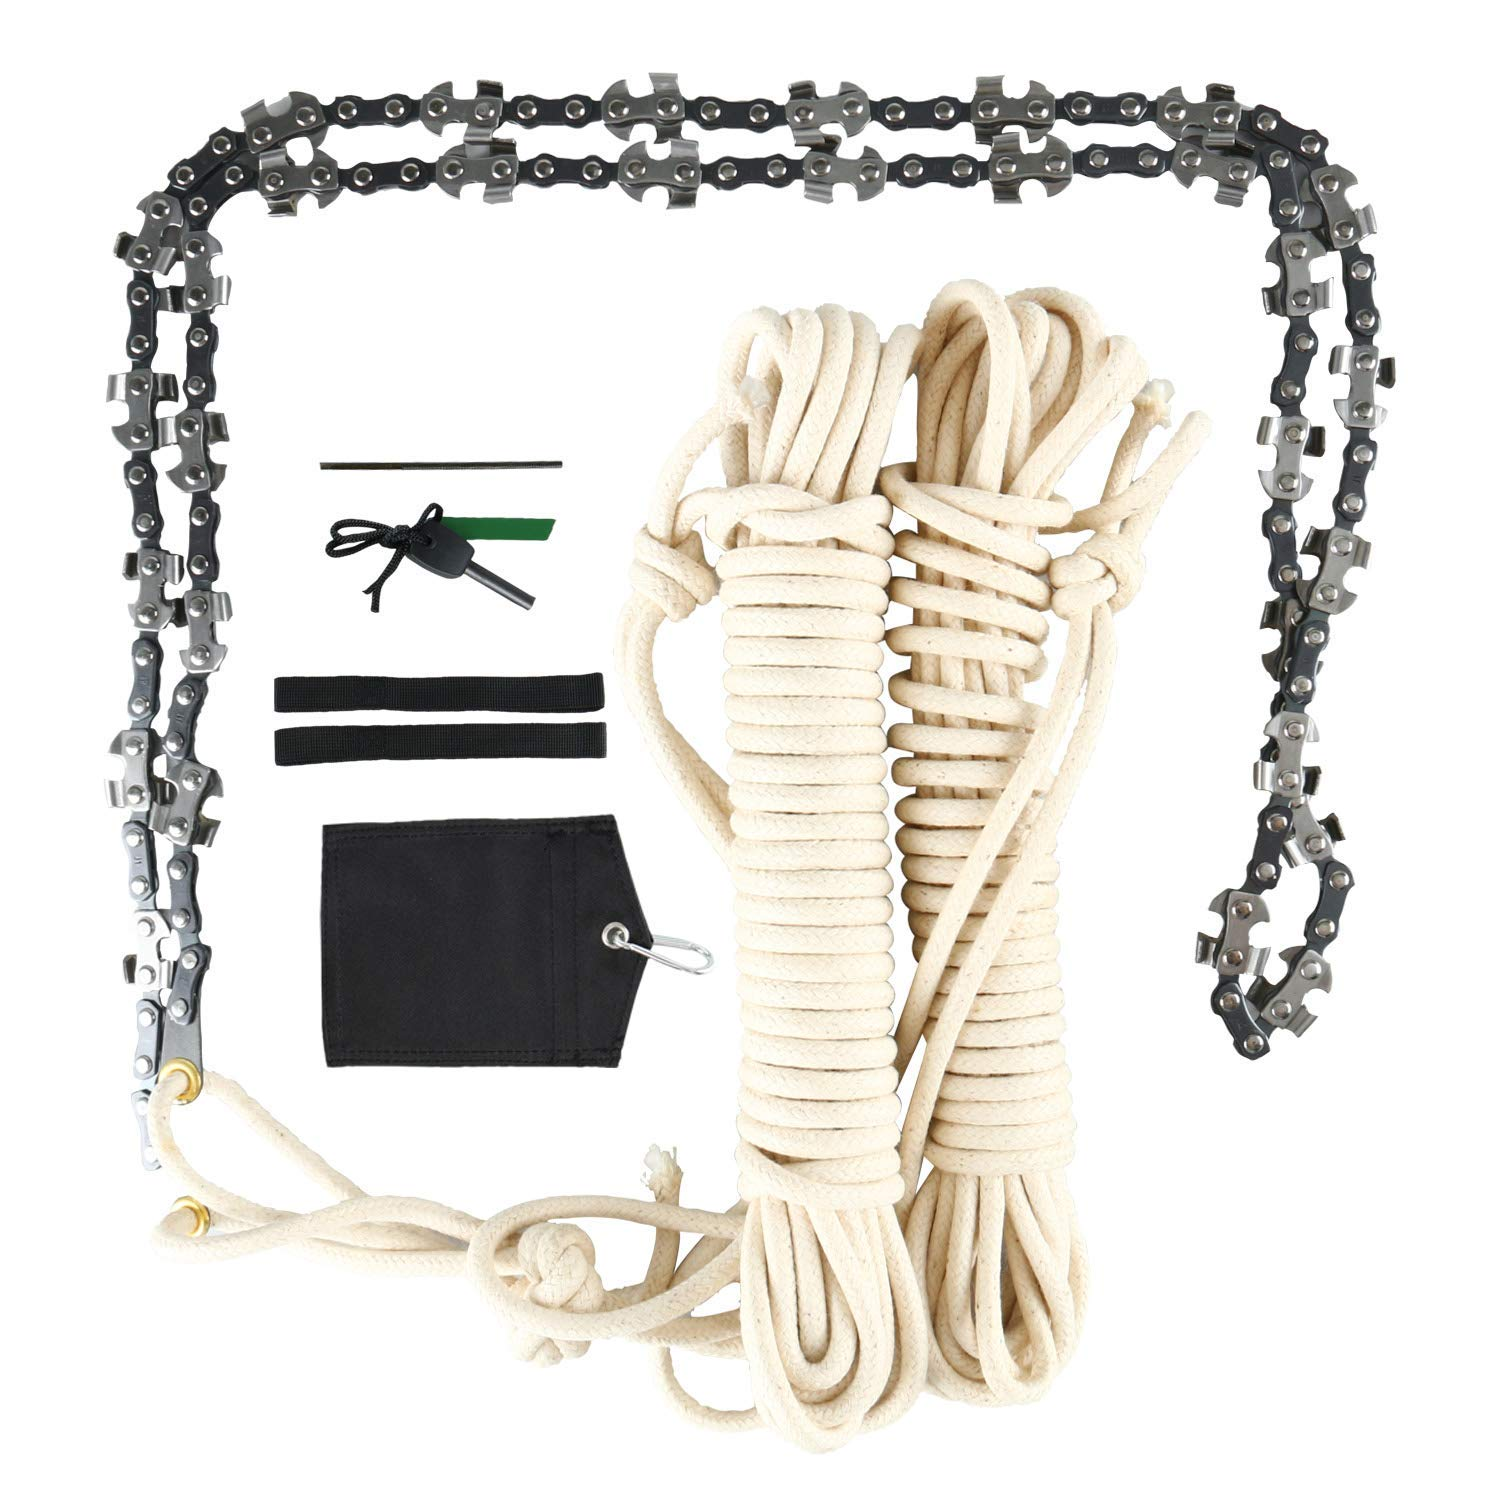 STABLEWARE 48 Inch High Reach Tree Limb Hand Rope Chain Saw by STABLEWARE